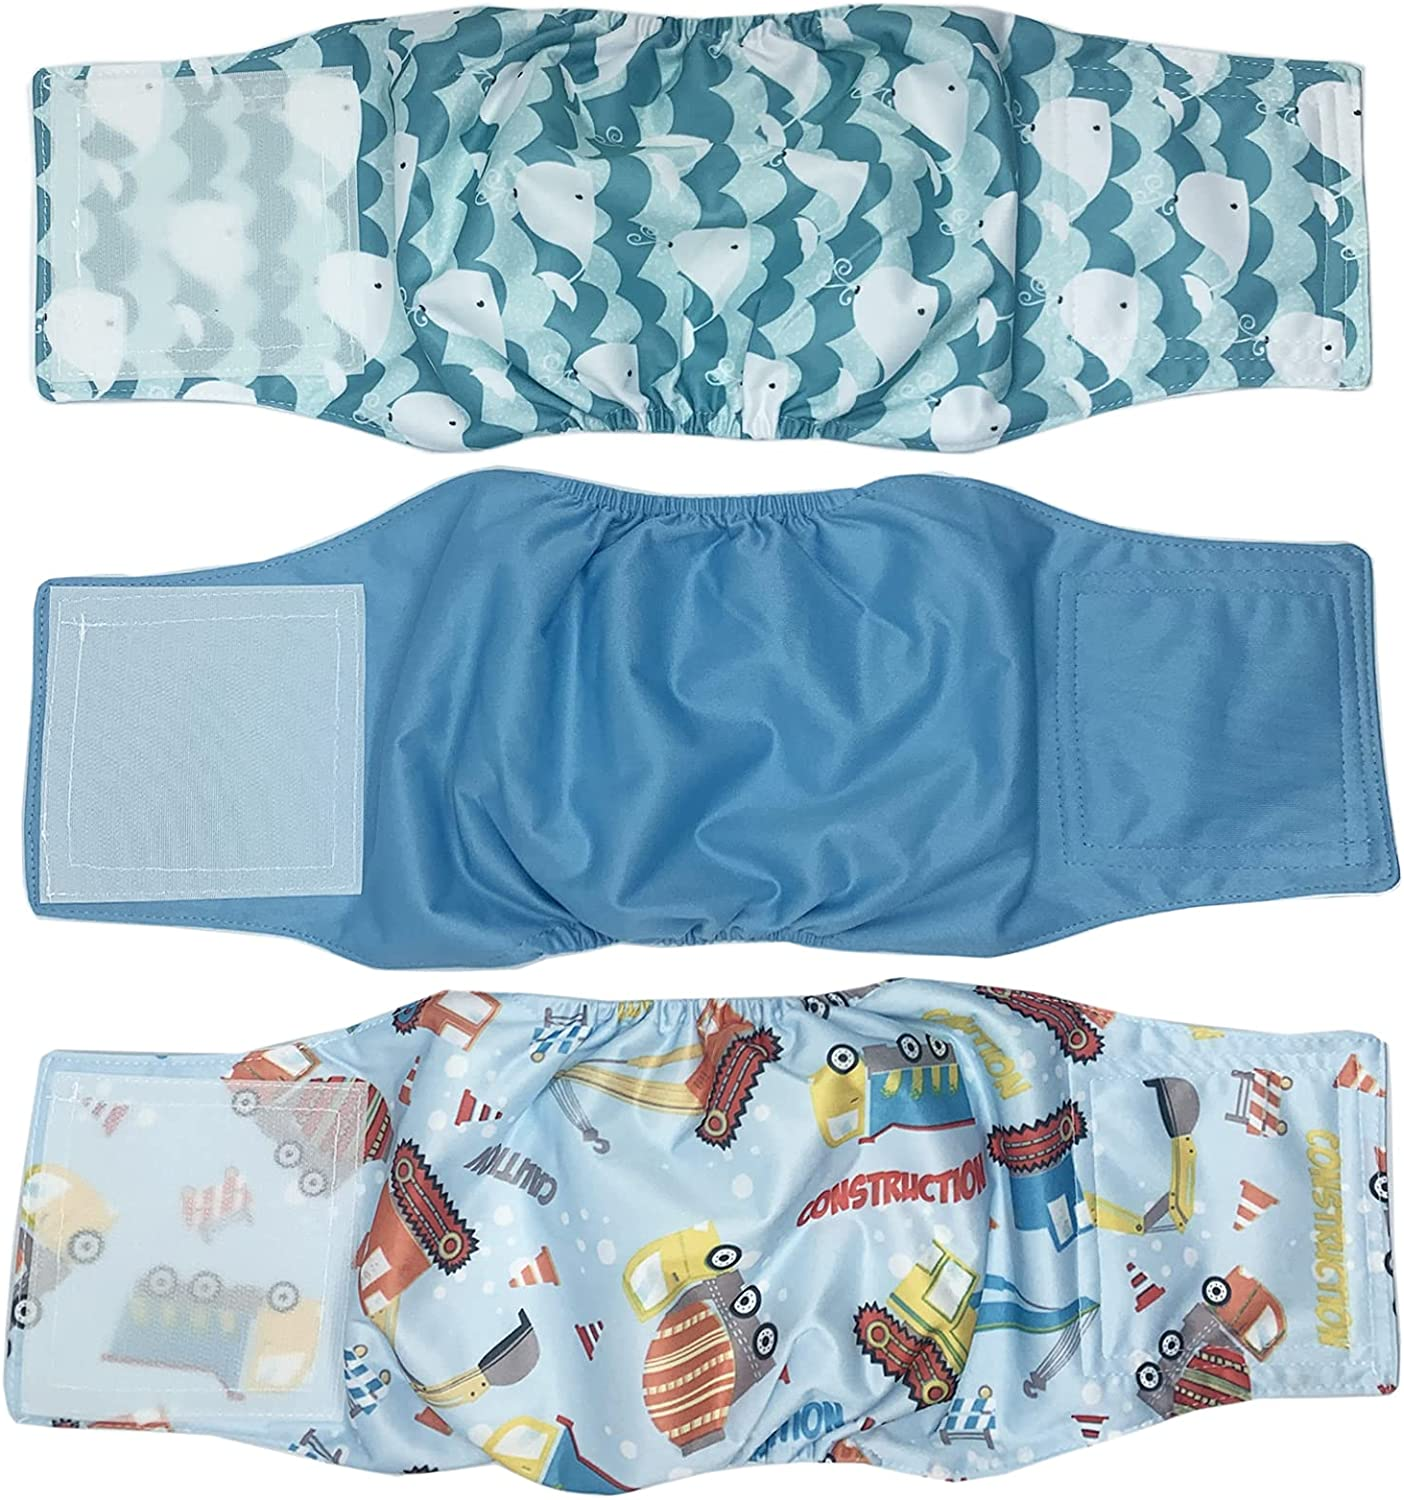 Cilkus Washable Male Dog Diapers Import Wrap Max 62% OFF - Belly Sof 2021